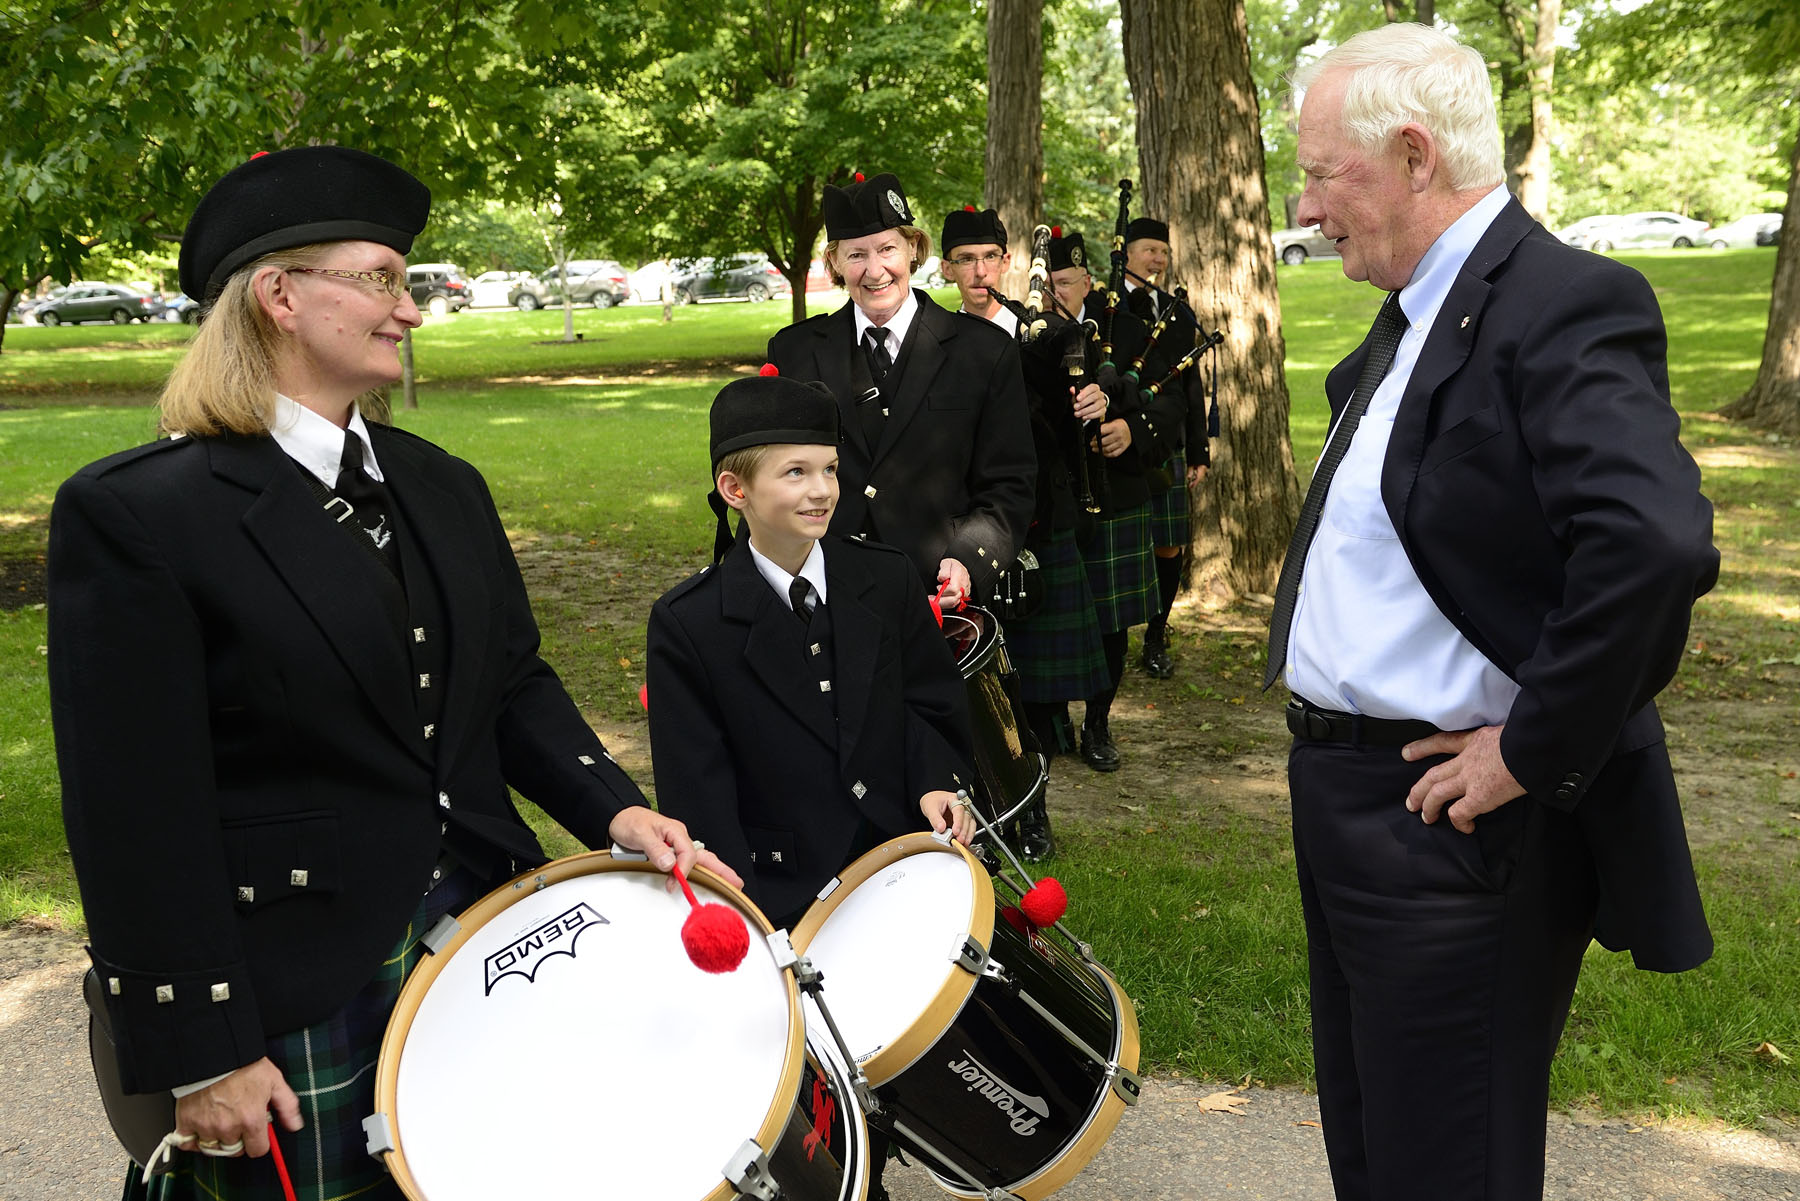 His Excellency the Right Honourable David Johnston, Governor General of Canada, hosted the launch of the 2016 Government of Canada Workplace Charitable Campaign (GCWCC) on the grounds of Rideau Hall on September 7, 2016. Before the event, he spent some time speaking with pipers from the Sons of Scotland Pipe Band of Ottawa.